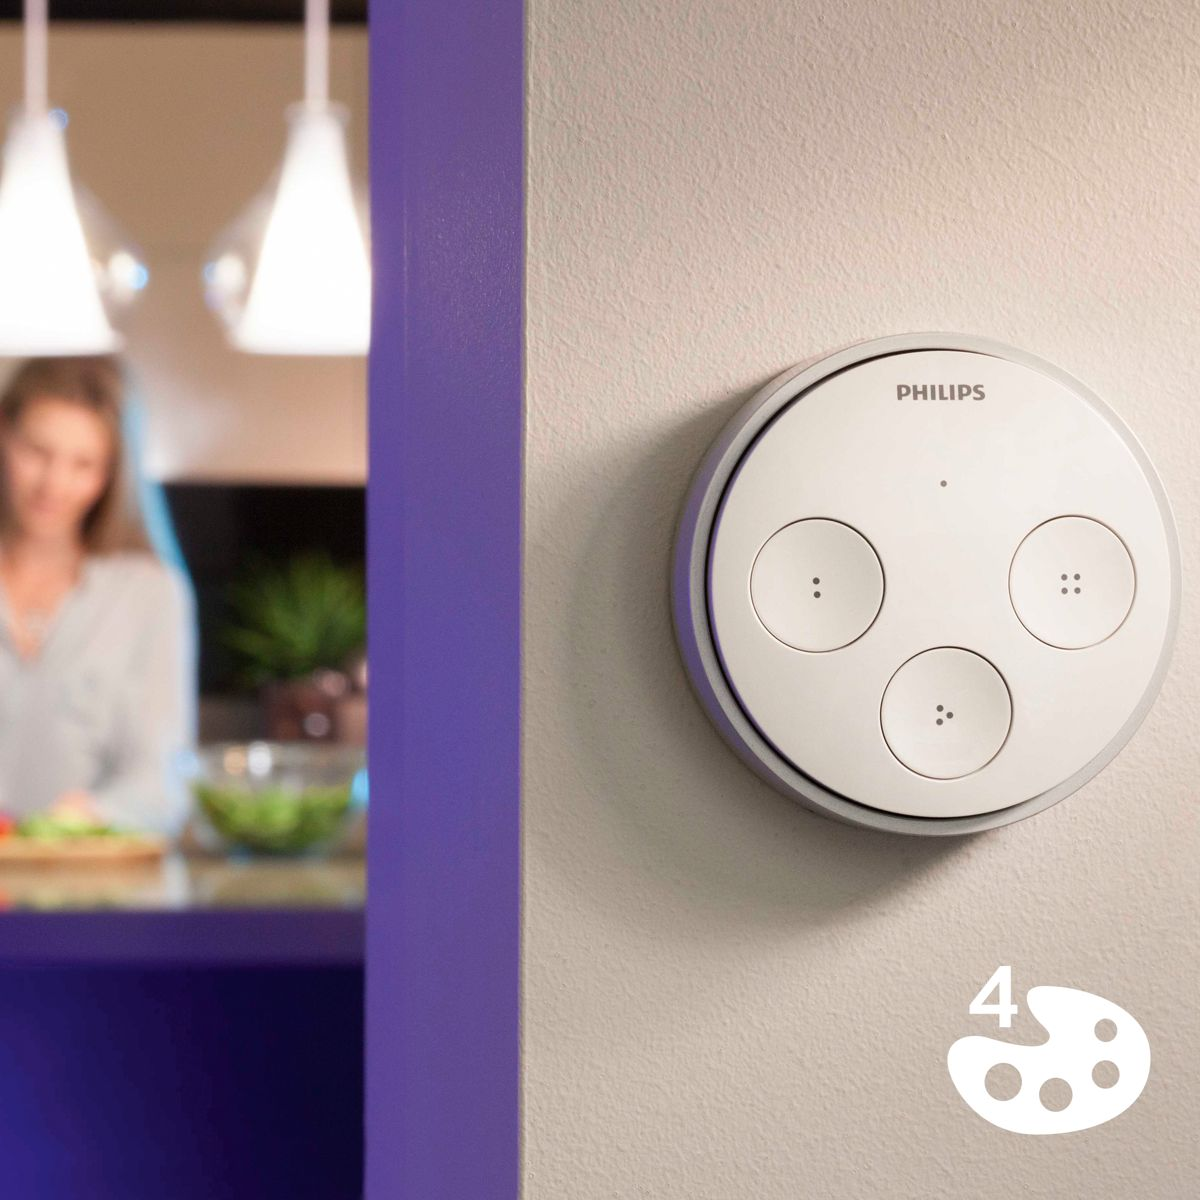 Recall your favourite Philips Hue scenes